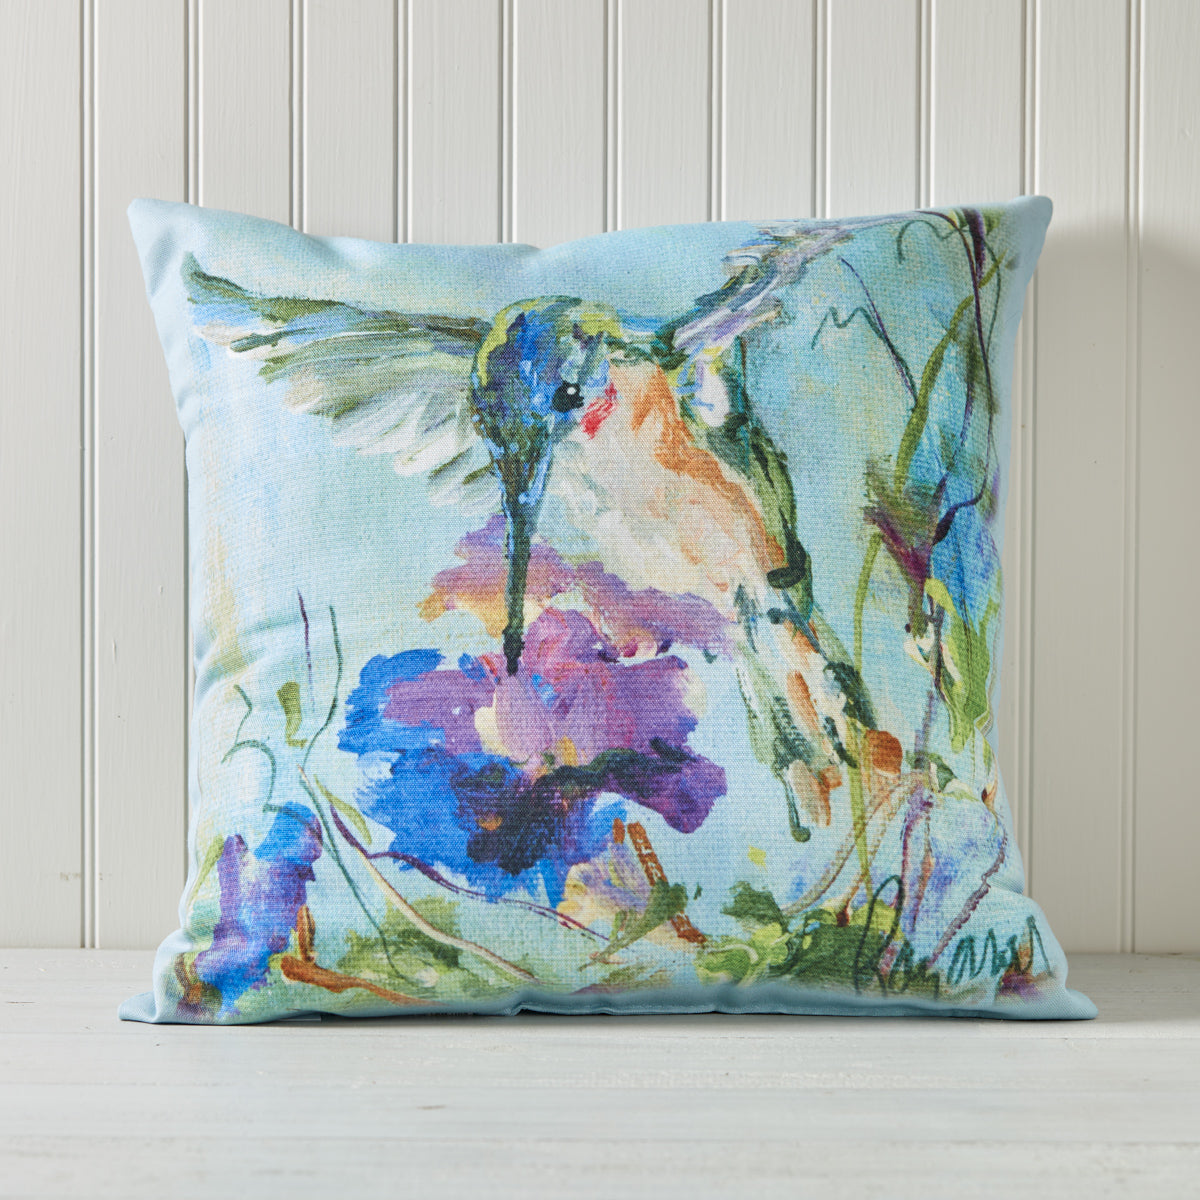 Watercolor Hummingbird Indoor/Outdoor Pillow